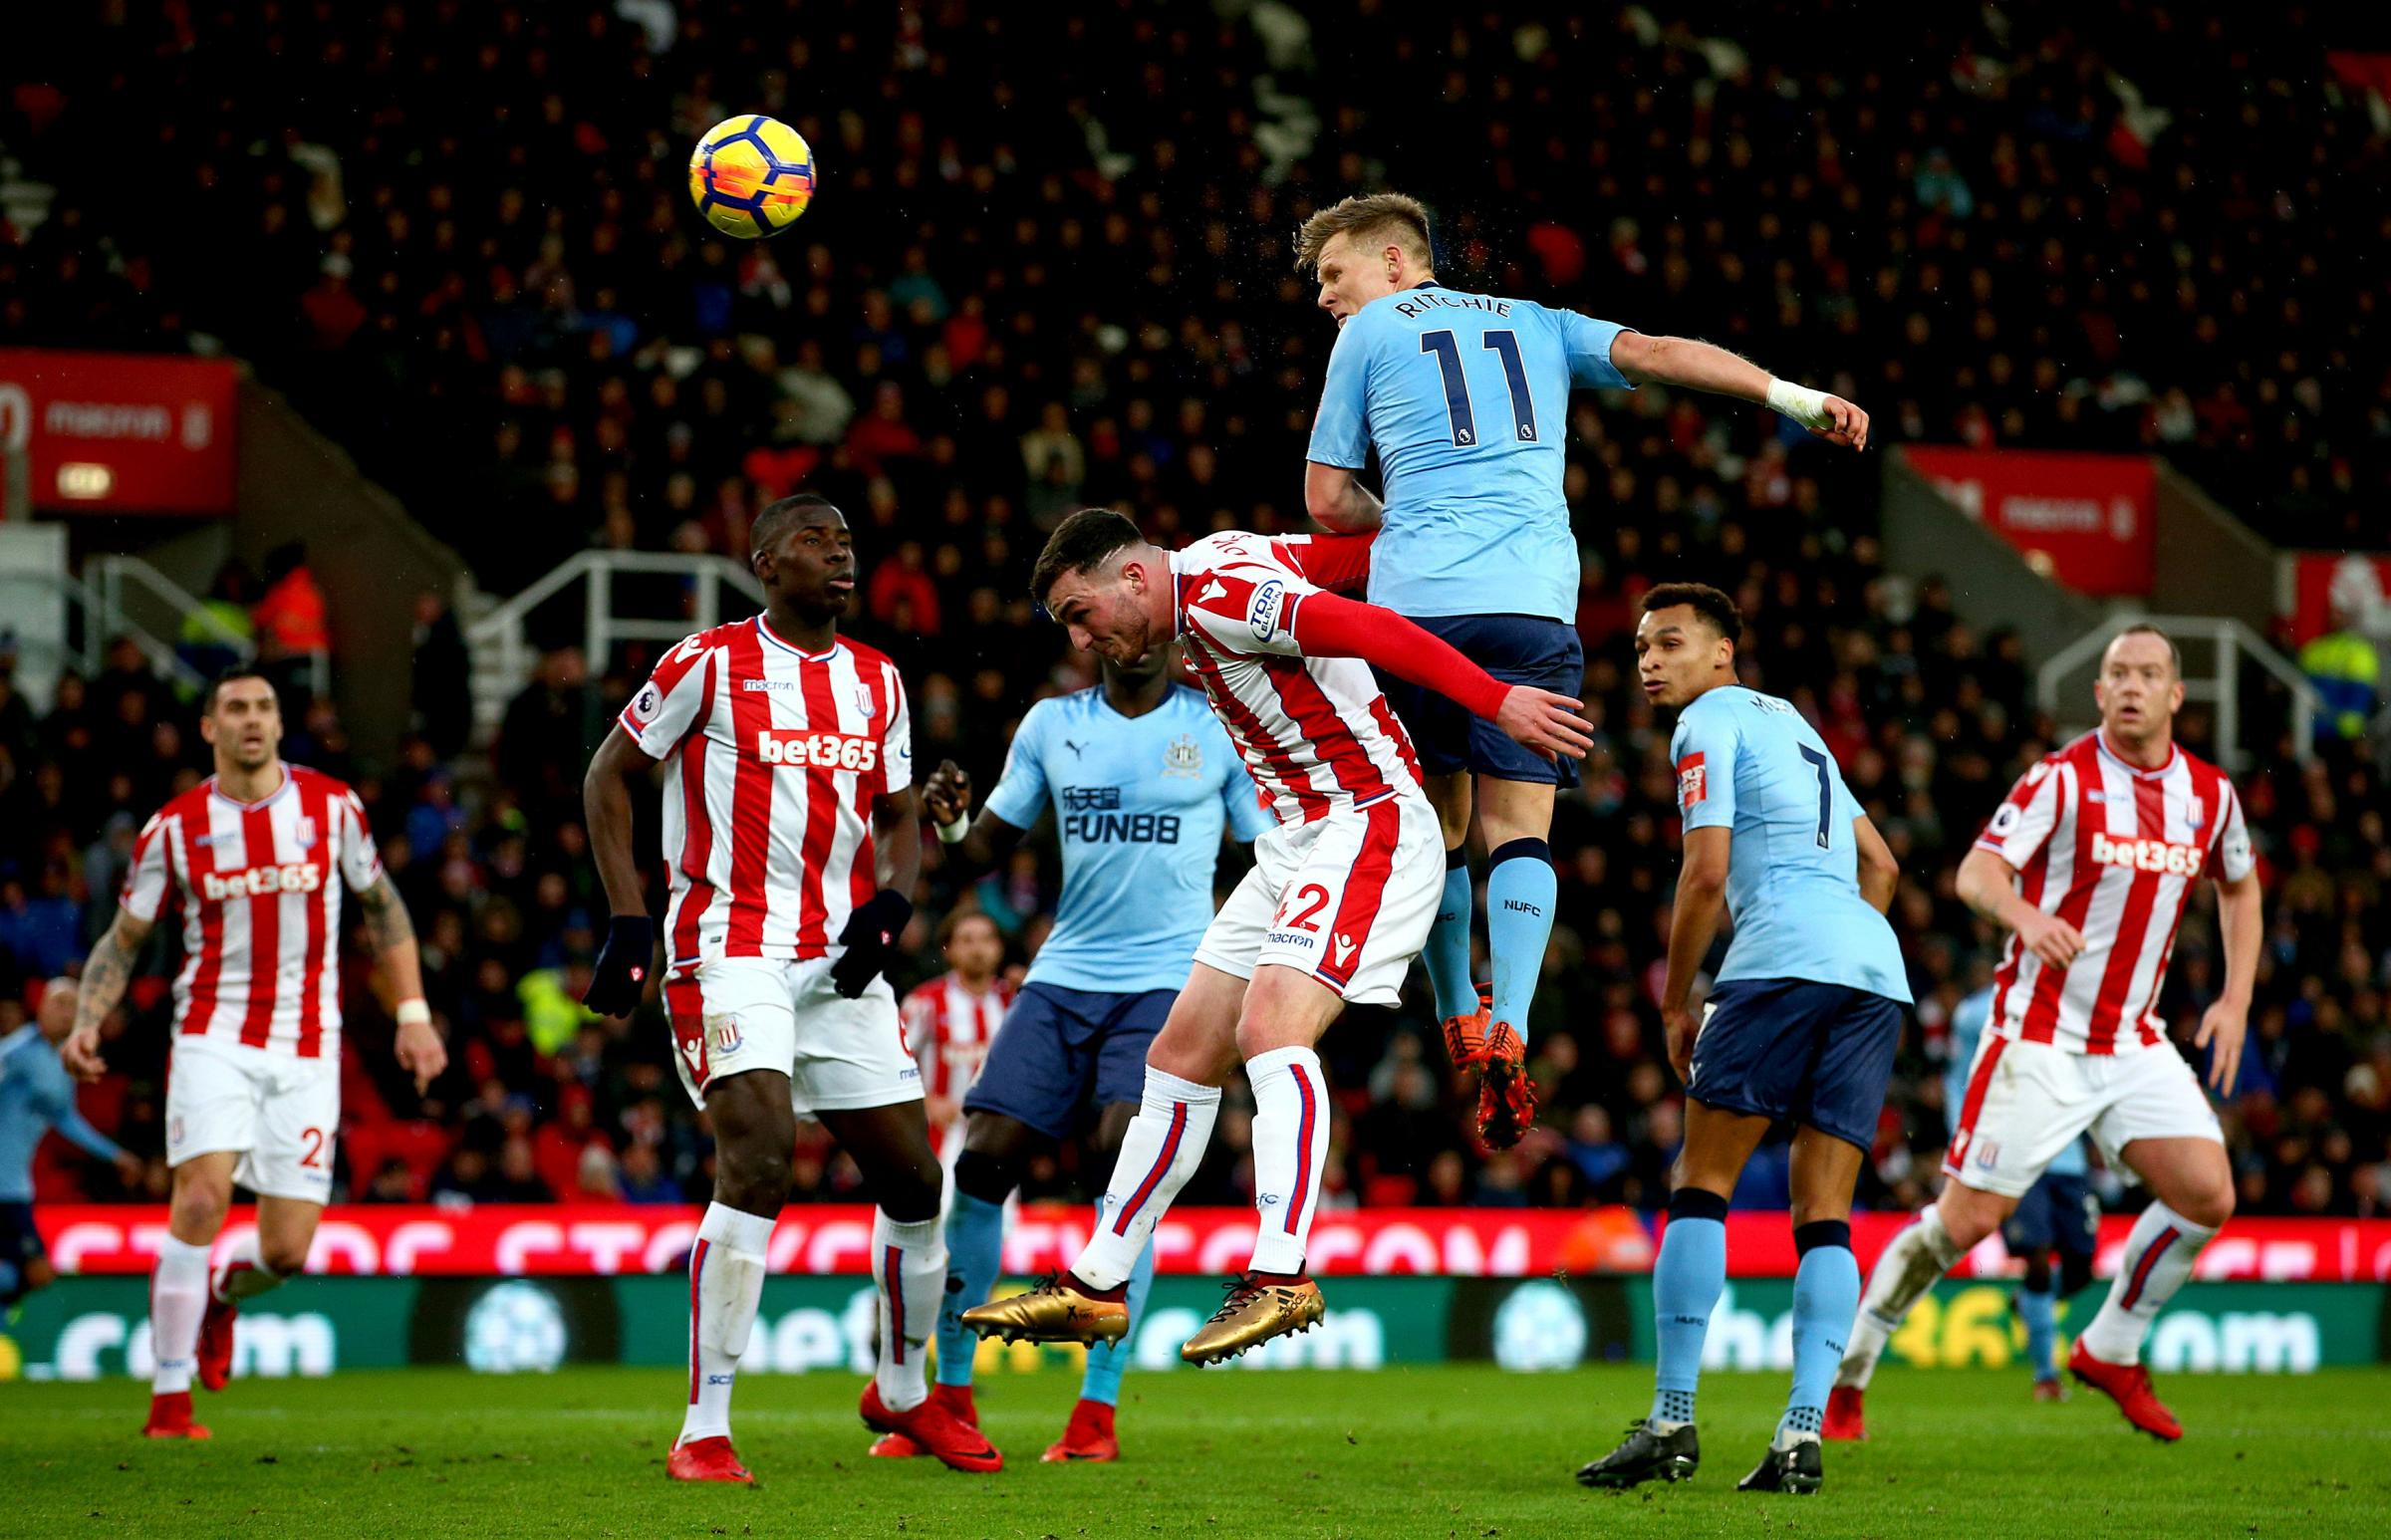 RISING HIGH: Matt Ritchie heads towards goal in Newcastle's 1-0 win at Stoke (Picture: Dave Thompson/PA Wire)